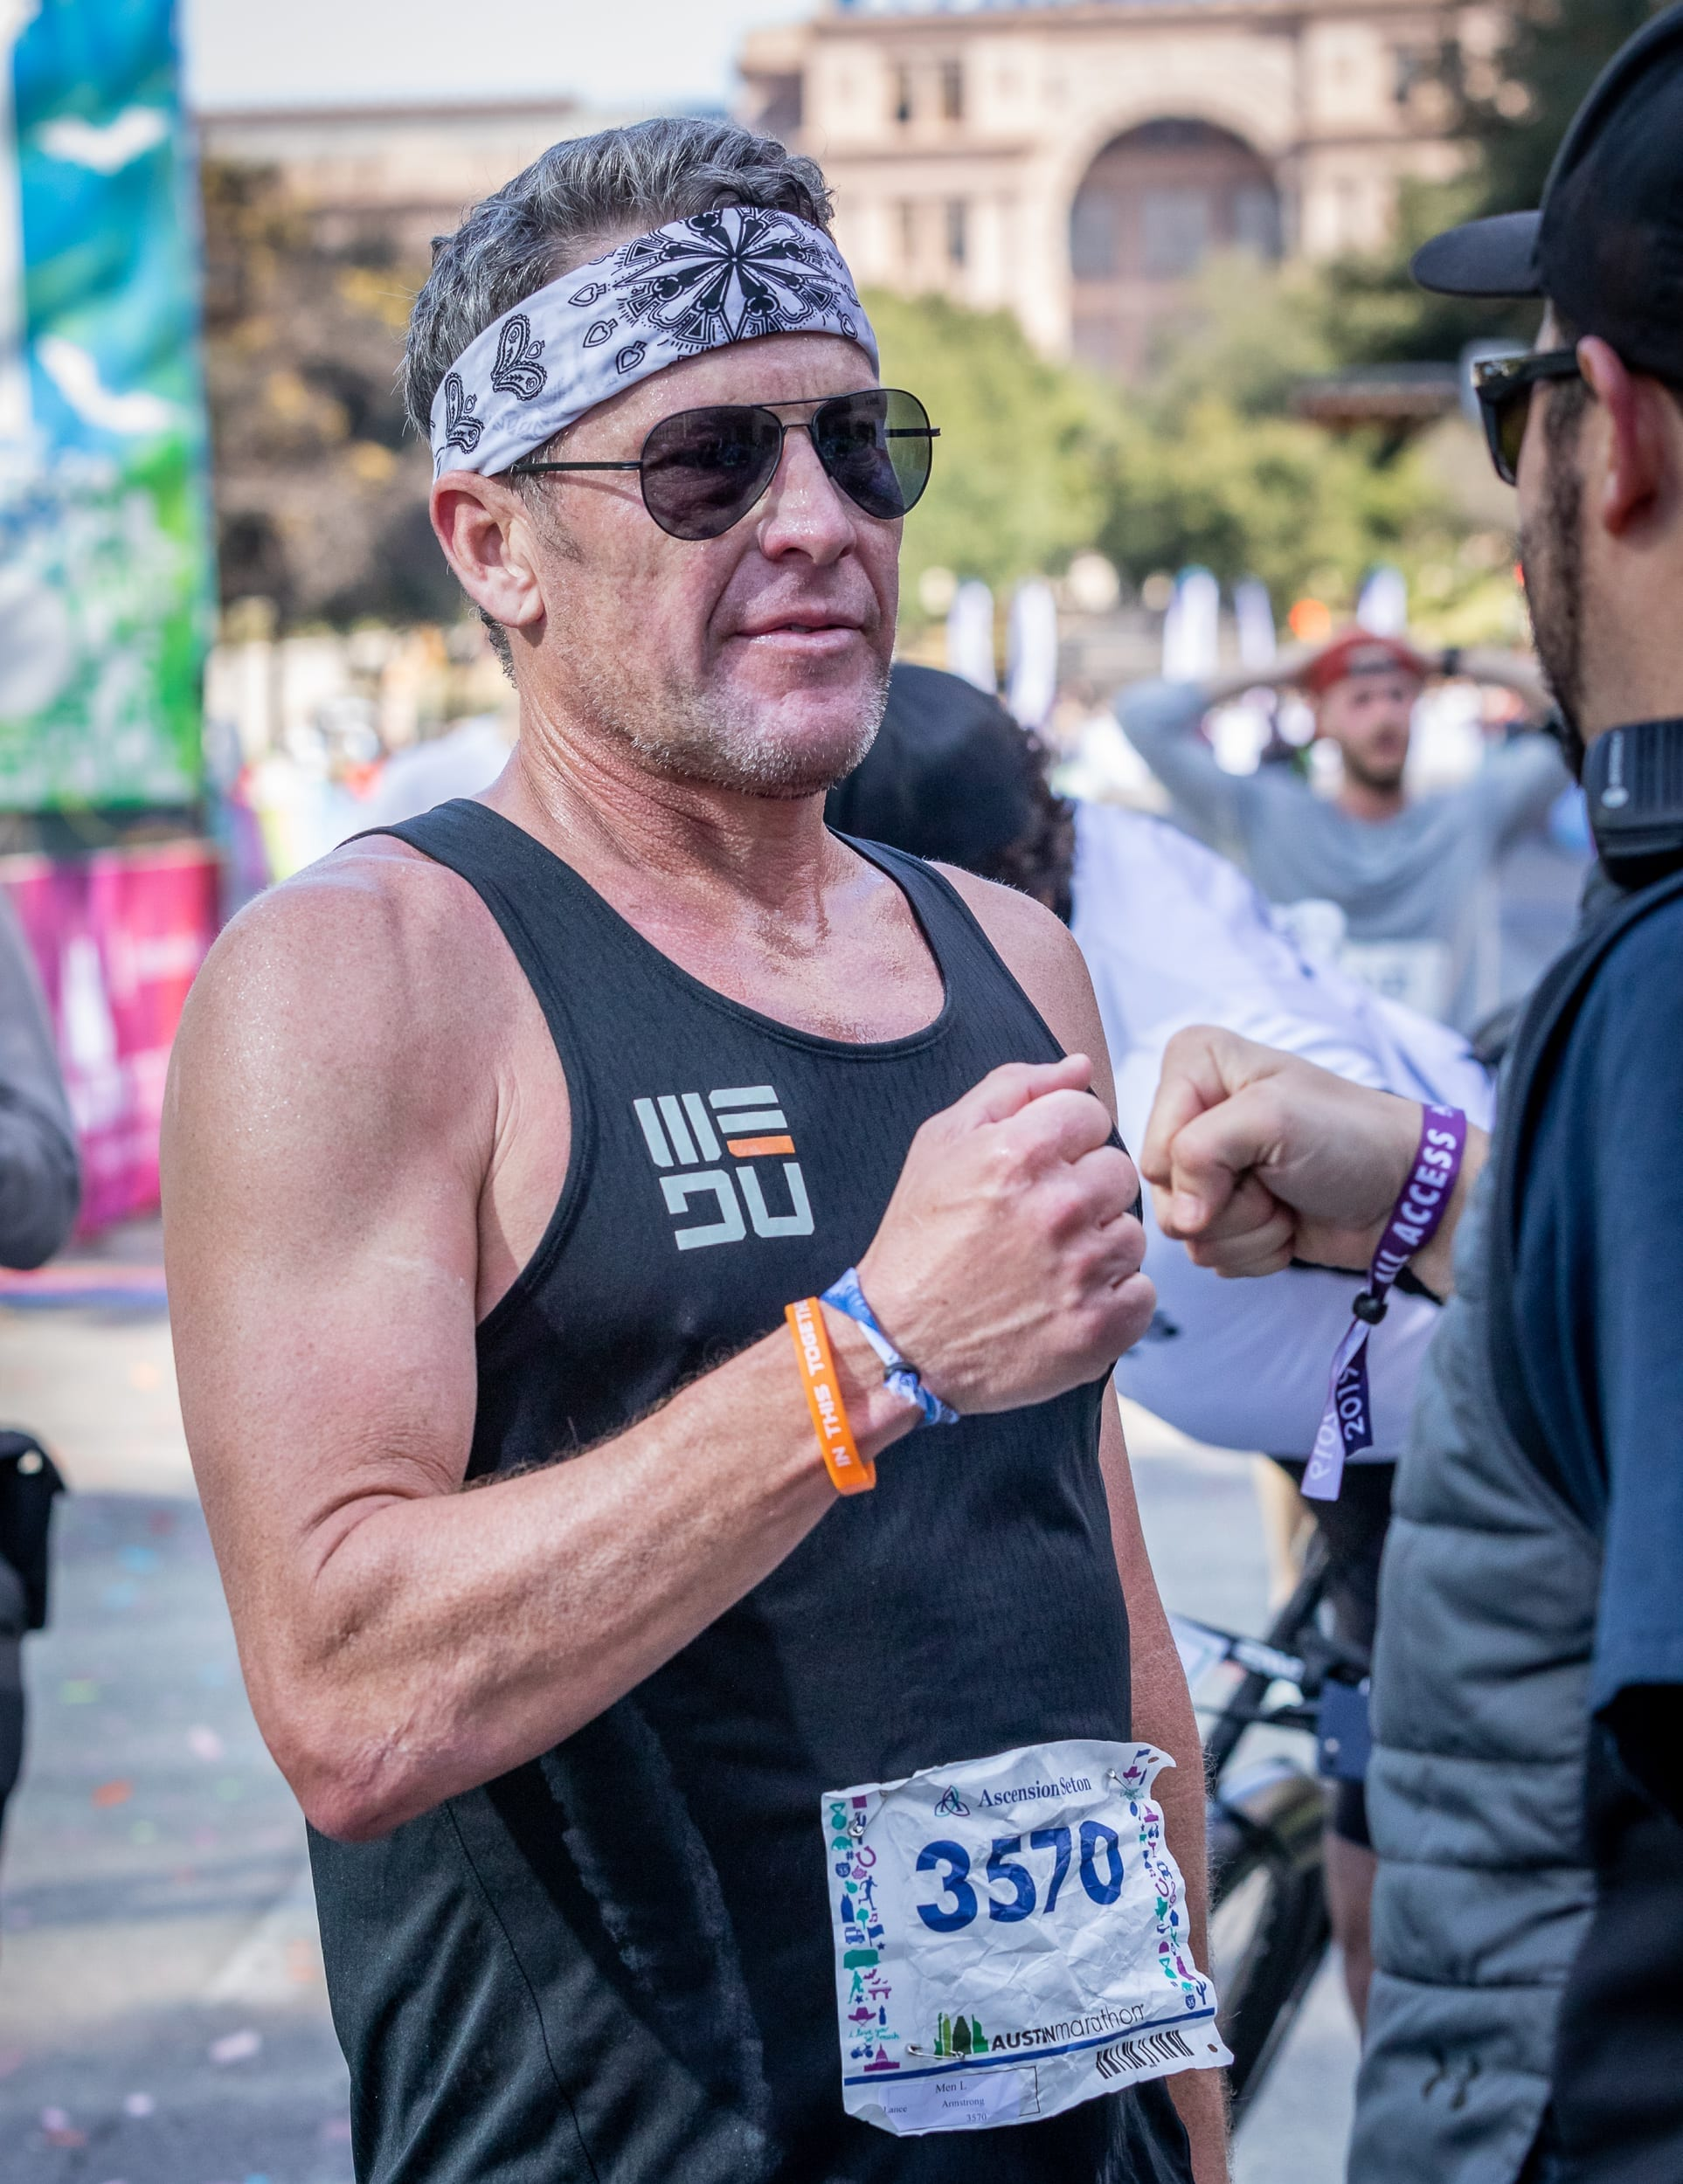 Lance Armstrong, the Austin Gives Miles Charity Chaser, at the 2019 Austin Marathon finish line. Running on behalf of Austin Gives Miles is a great tip to stay motivated.